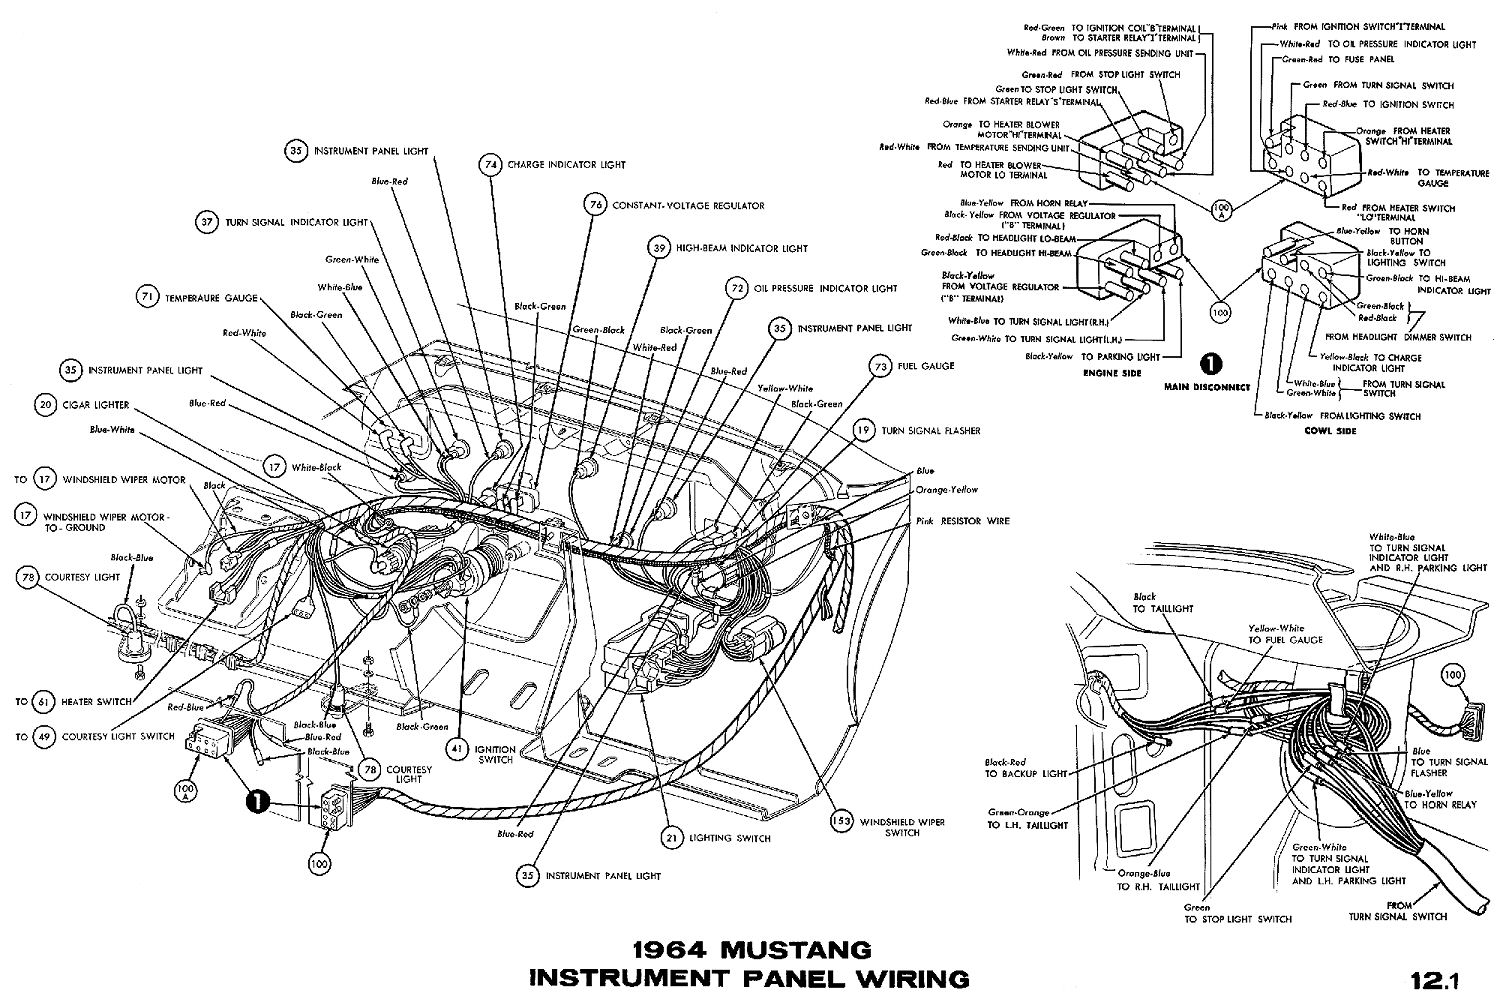 1964b 1964 mustang wiring diagrams average joe restoration instrument wiring diagram at honlapkeszites.co